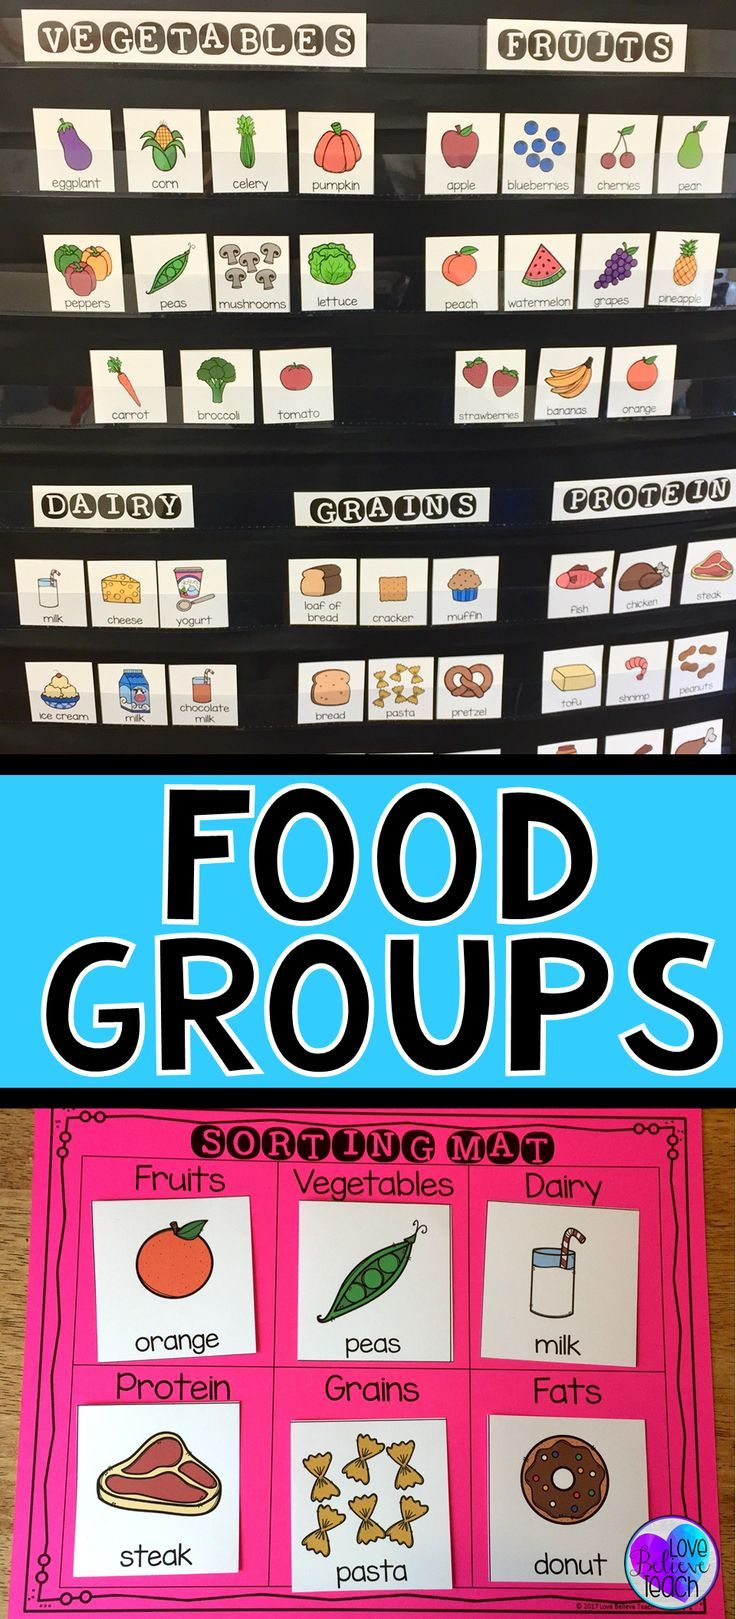 Food Groups Sorting and Searching Activities #kidsnutrition